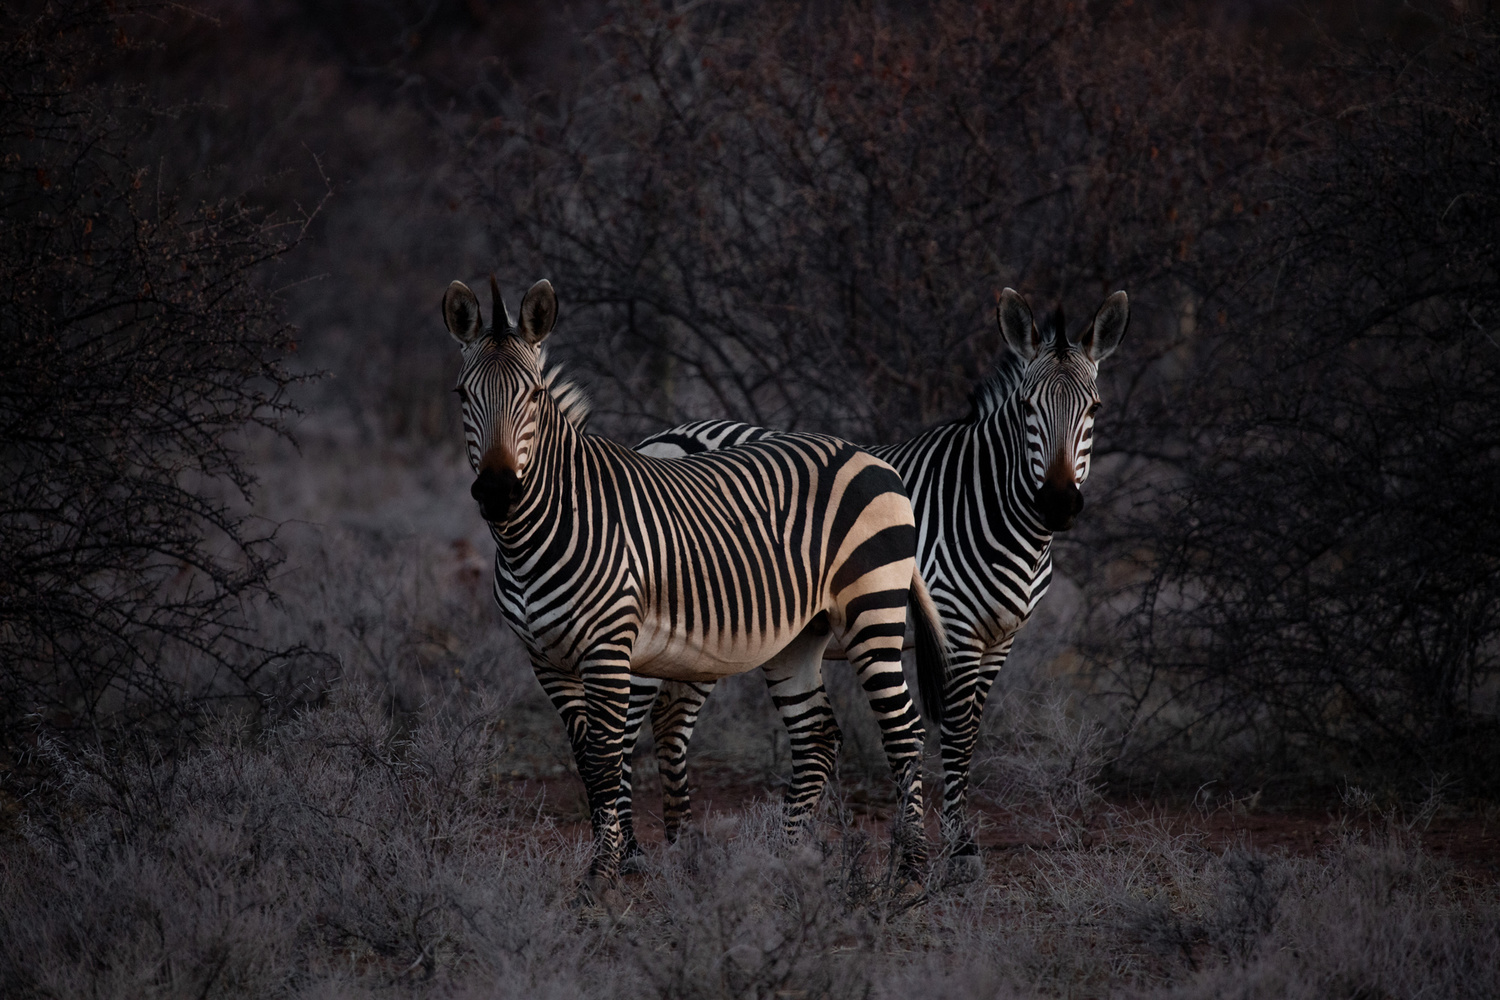 photo of zebras with basic color and contrast adjustments in lightroom